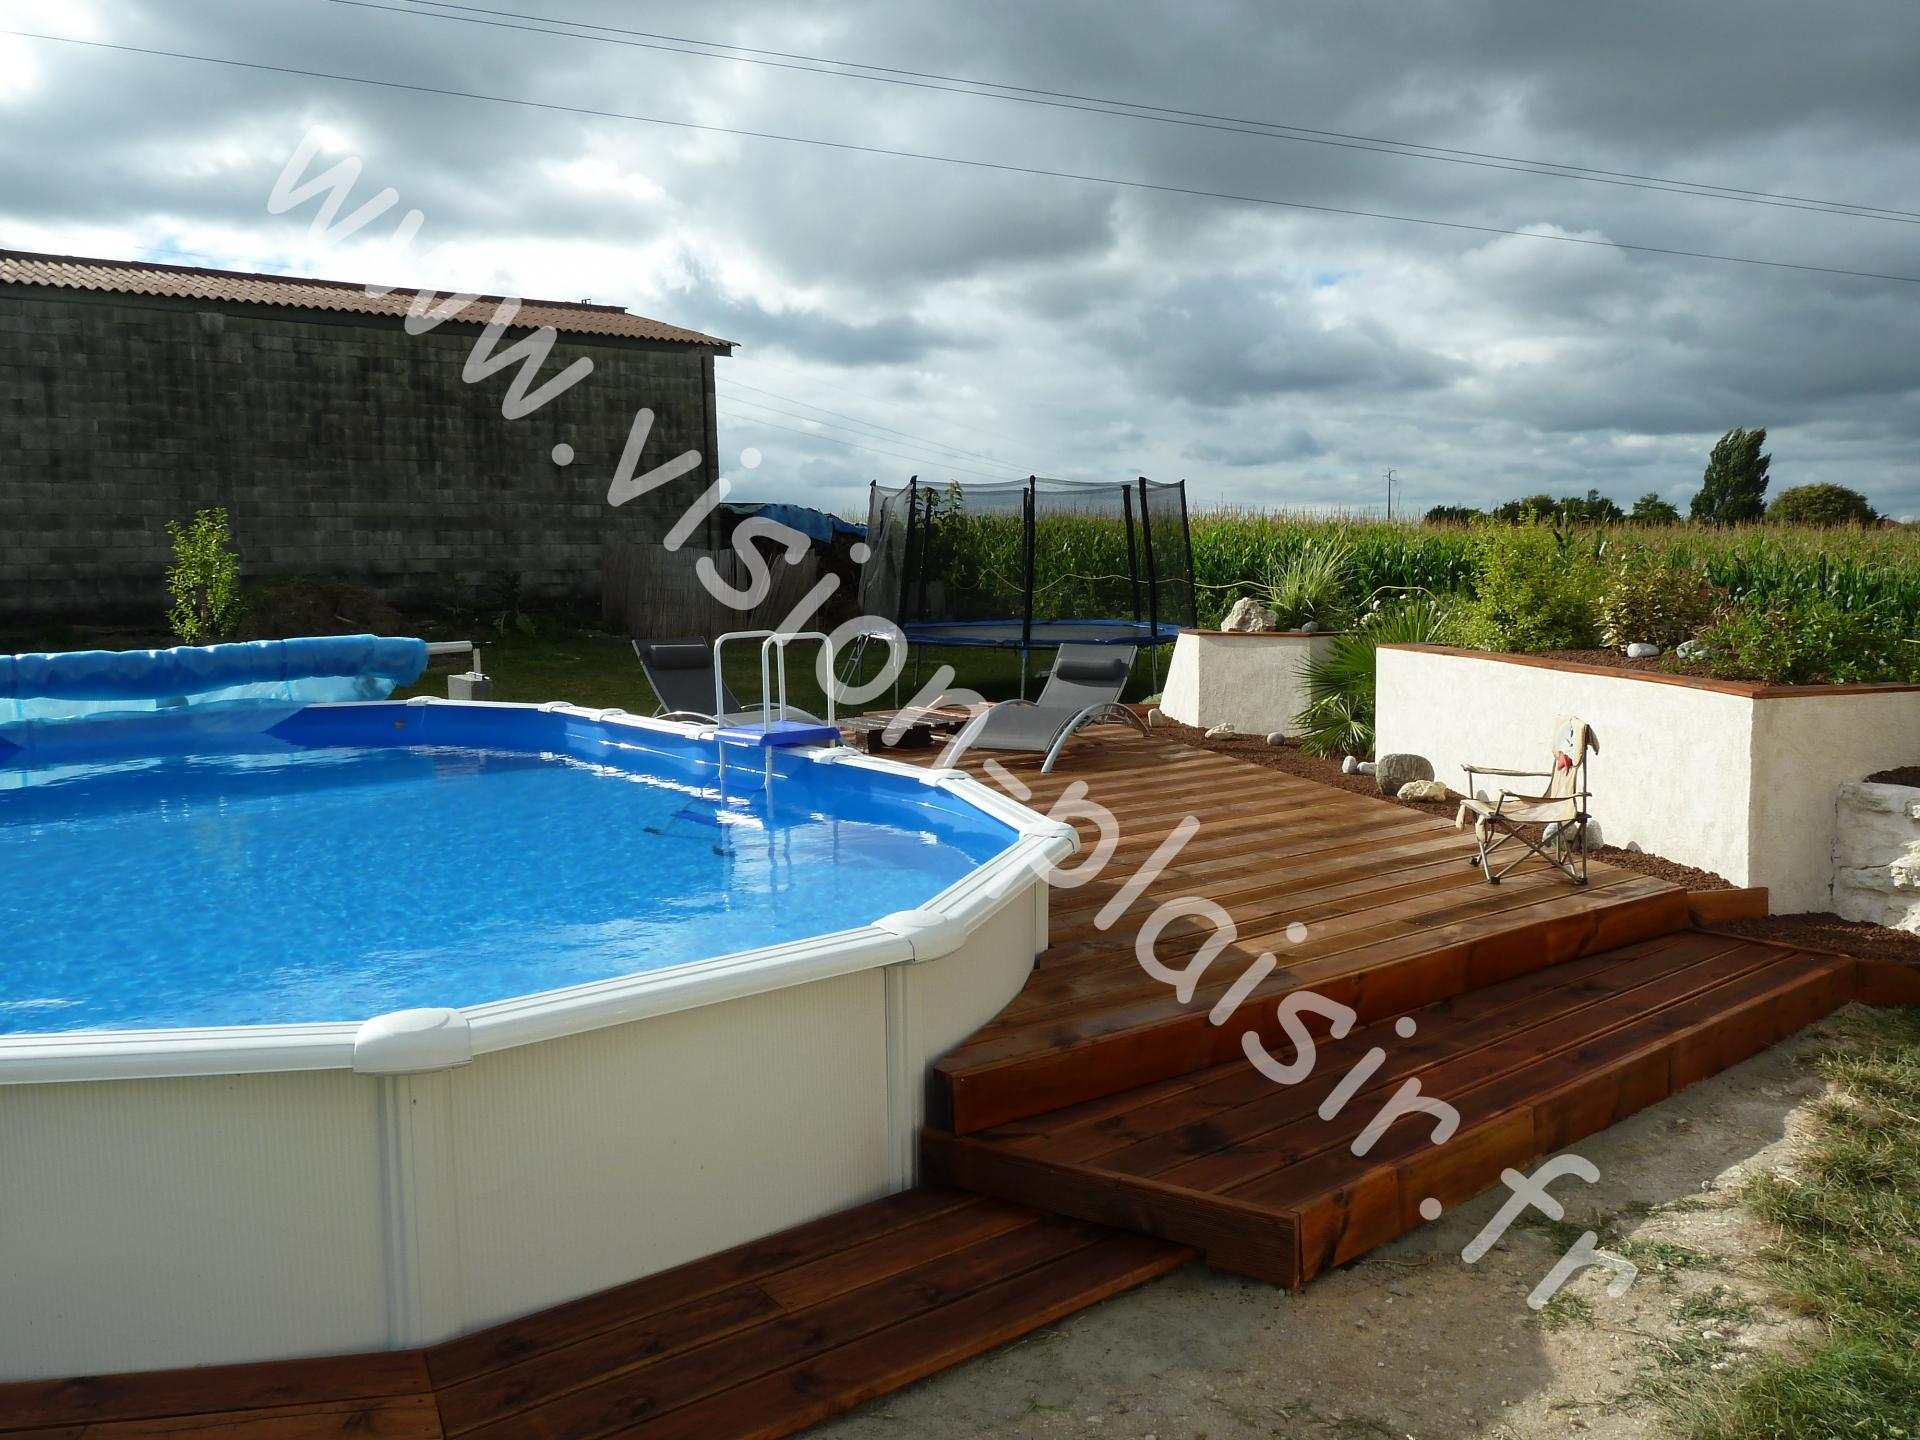 Blog de vision plaisir piscine hors sol semi enterr e for Piscine semi enterree rectangulaire